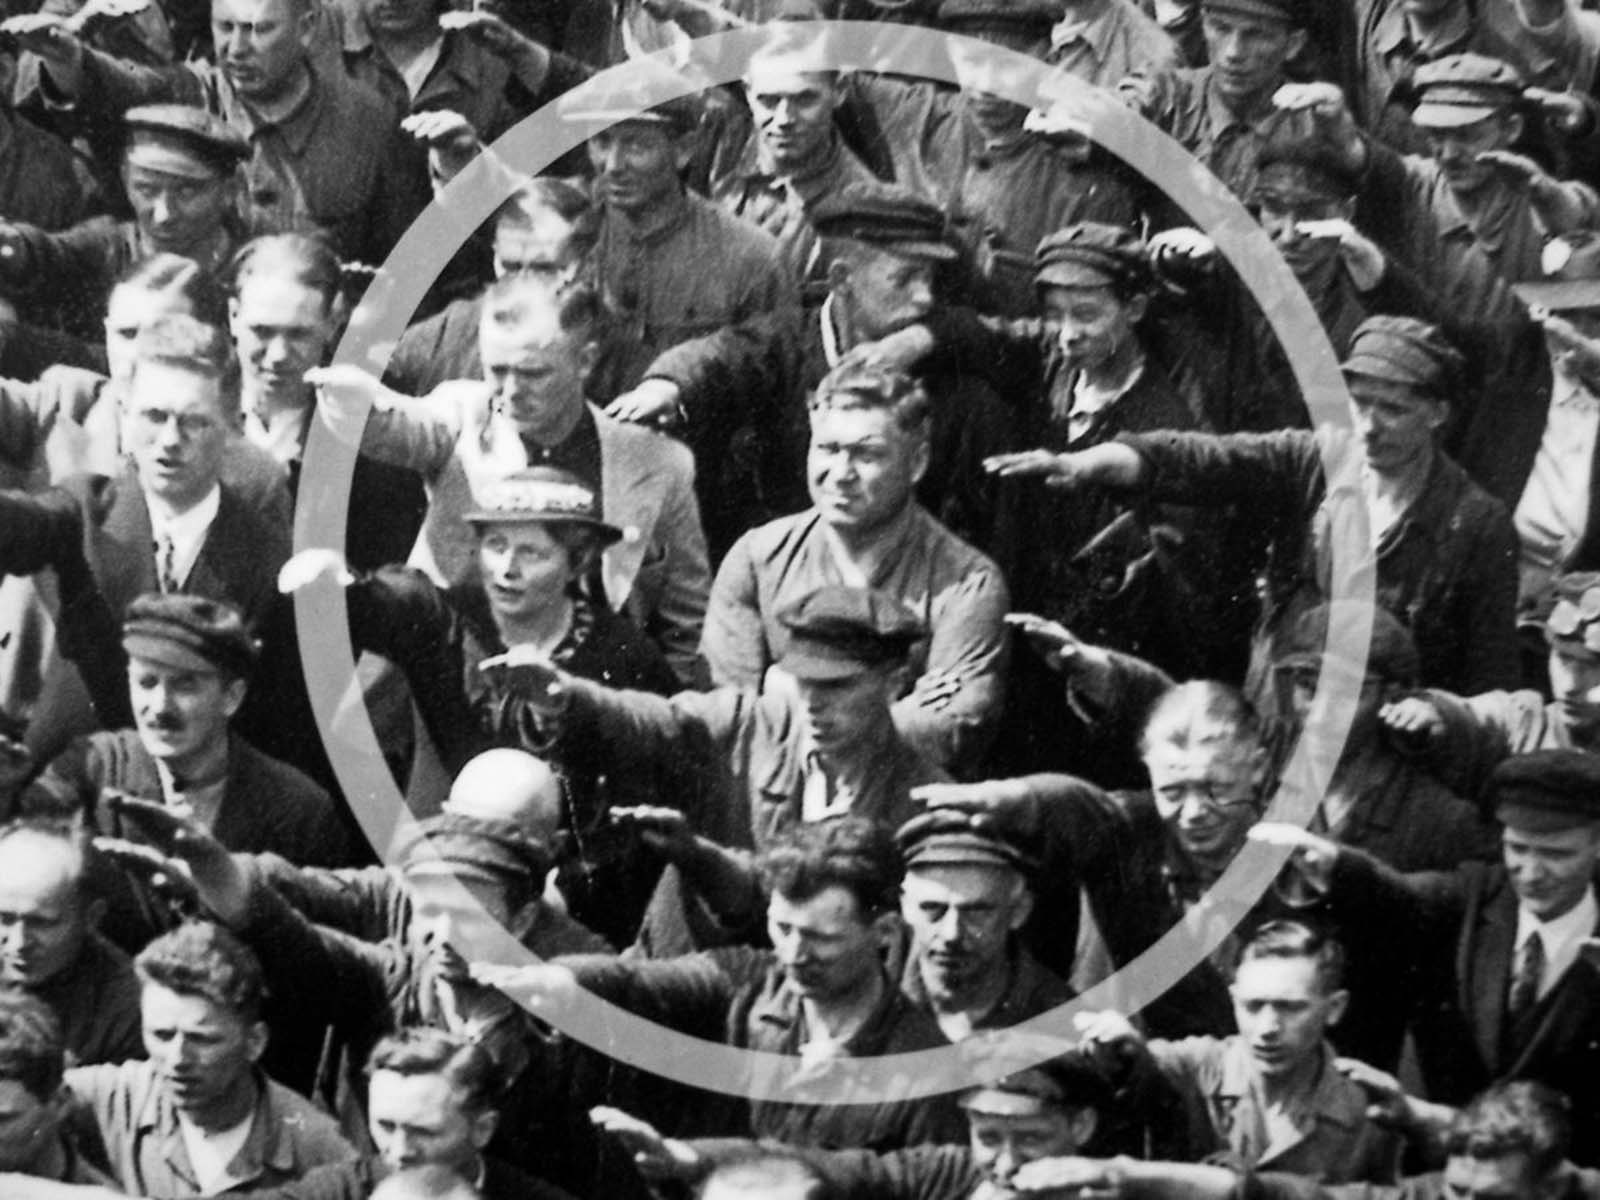 The source of Landmesser's protest, like many great tragedies, starts with a love story.